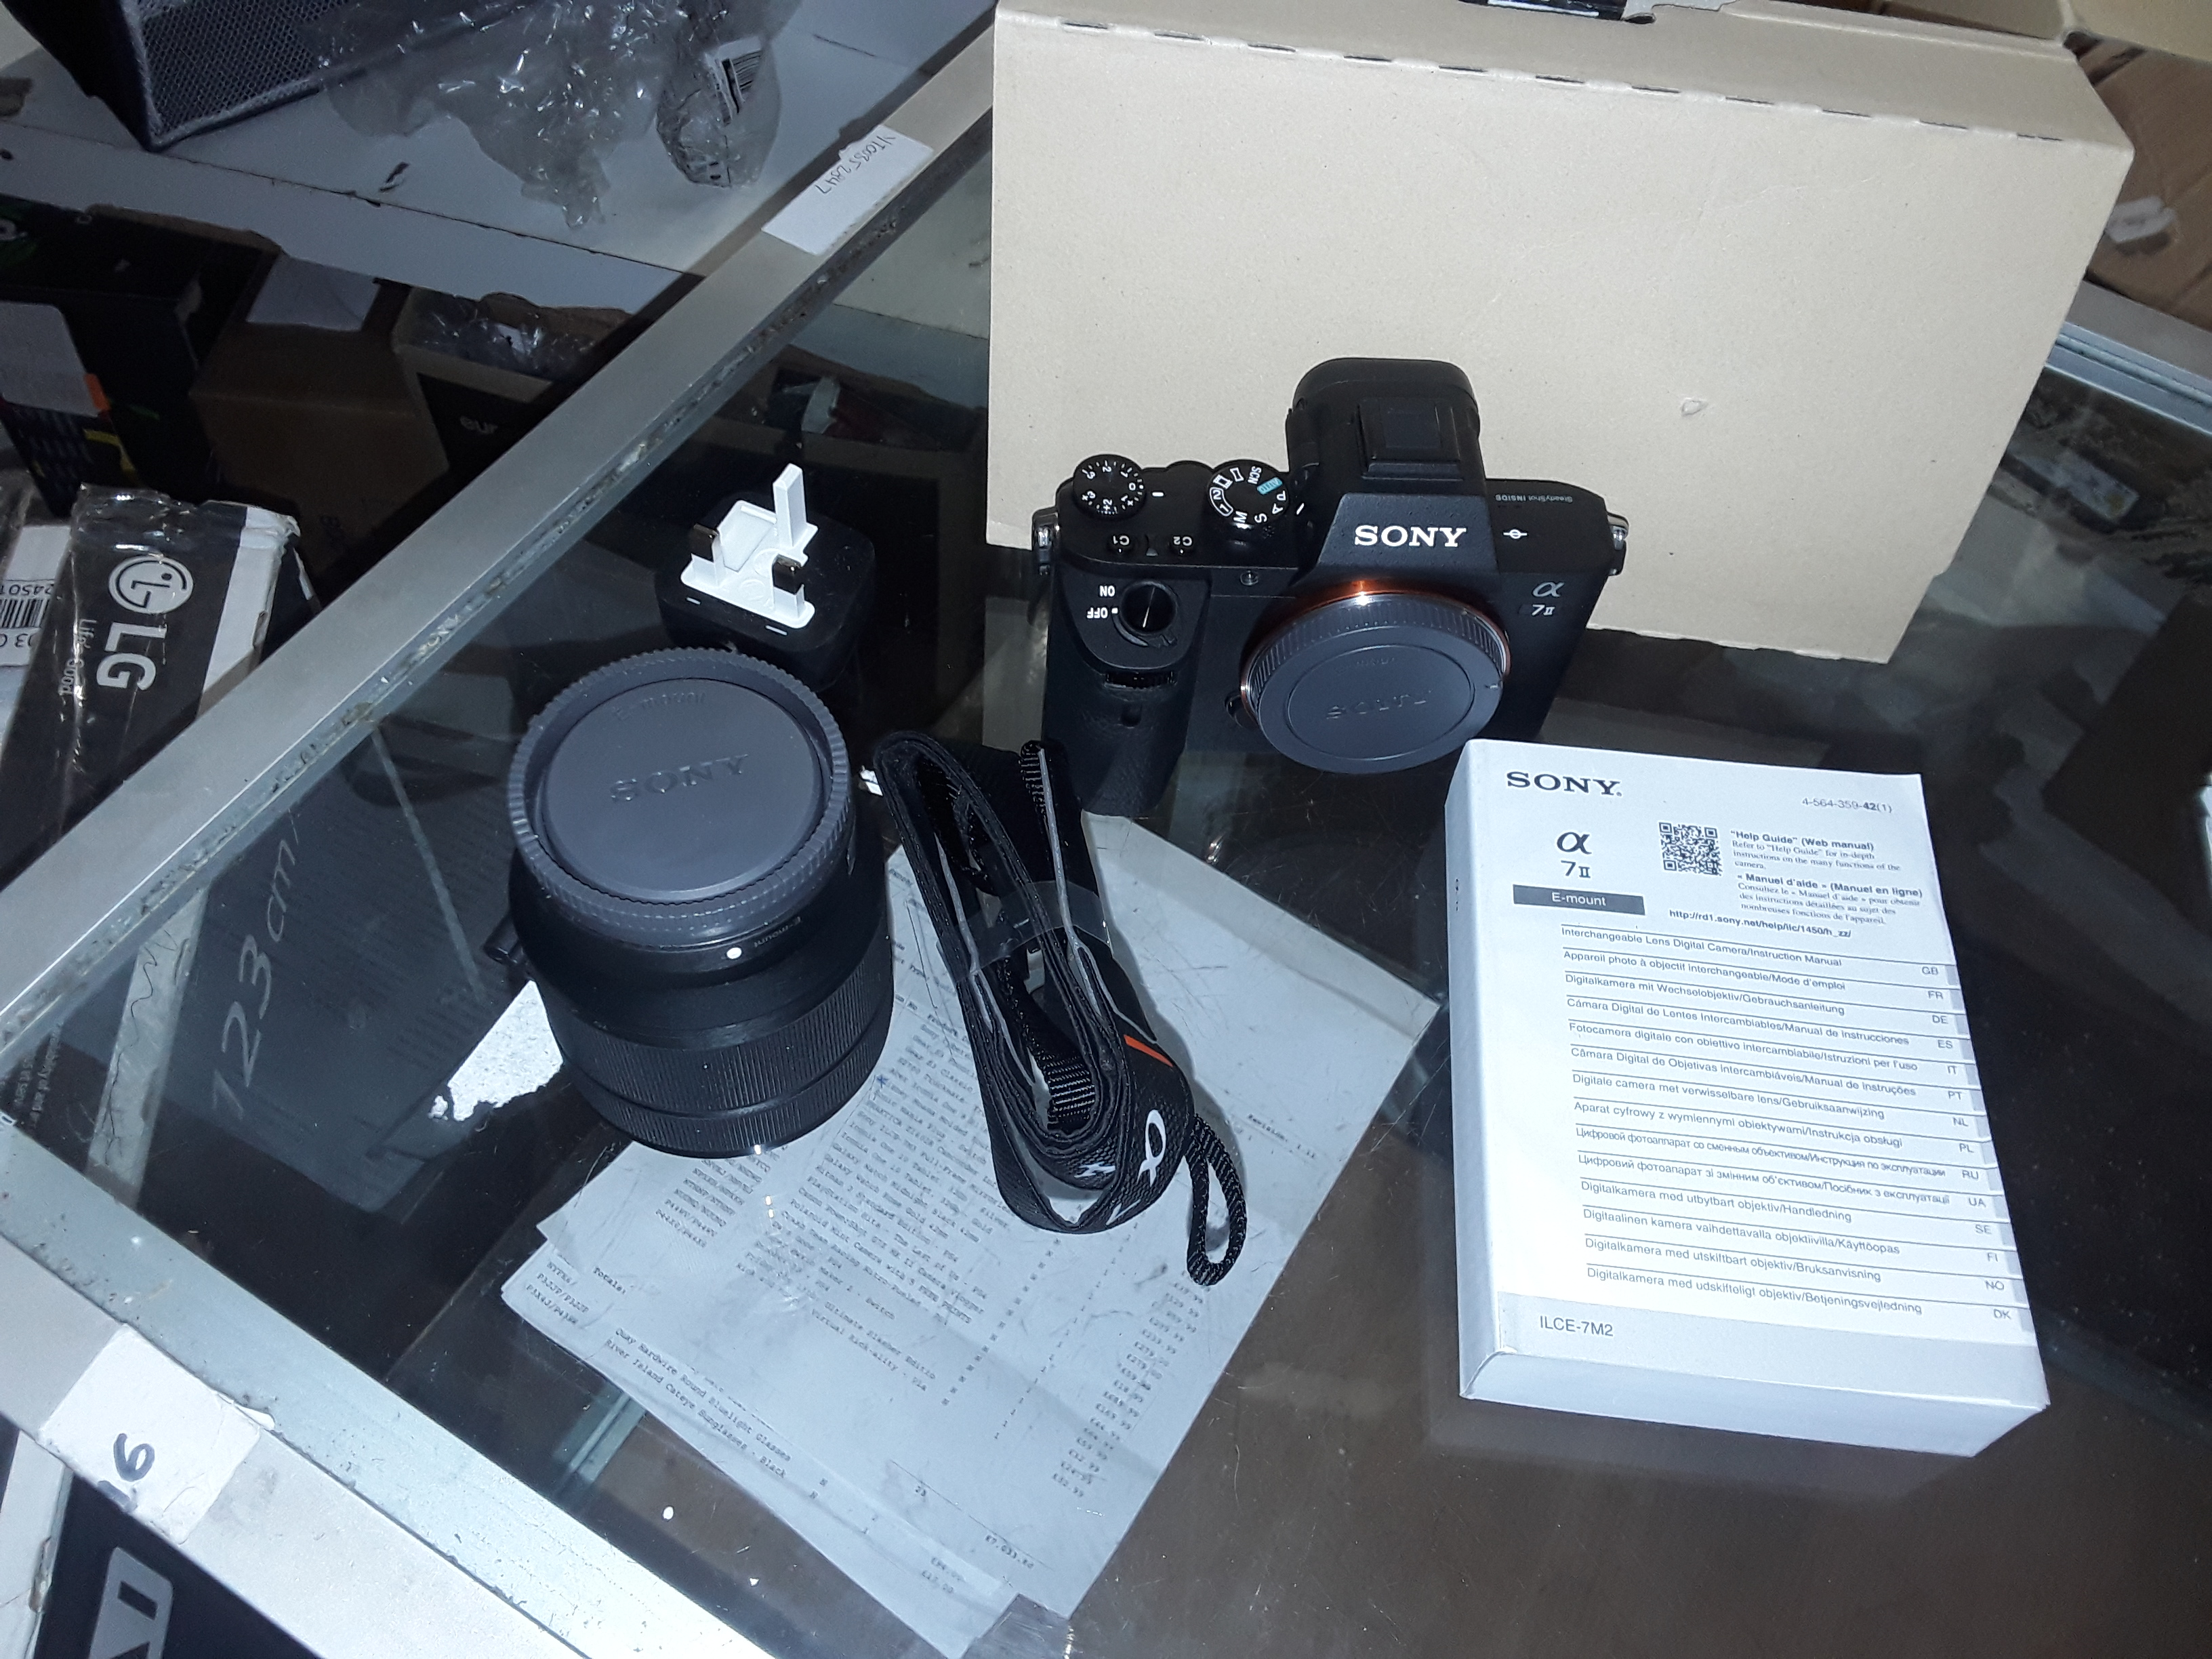 Lot 80: SONY A7 MKII COMPACT SYSTEM CAMERA WITH